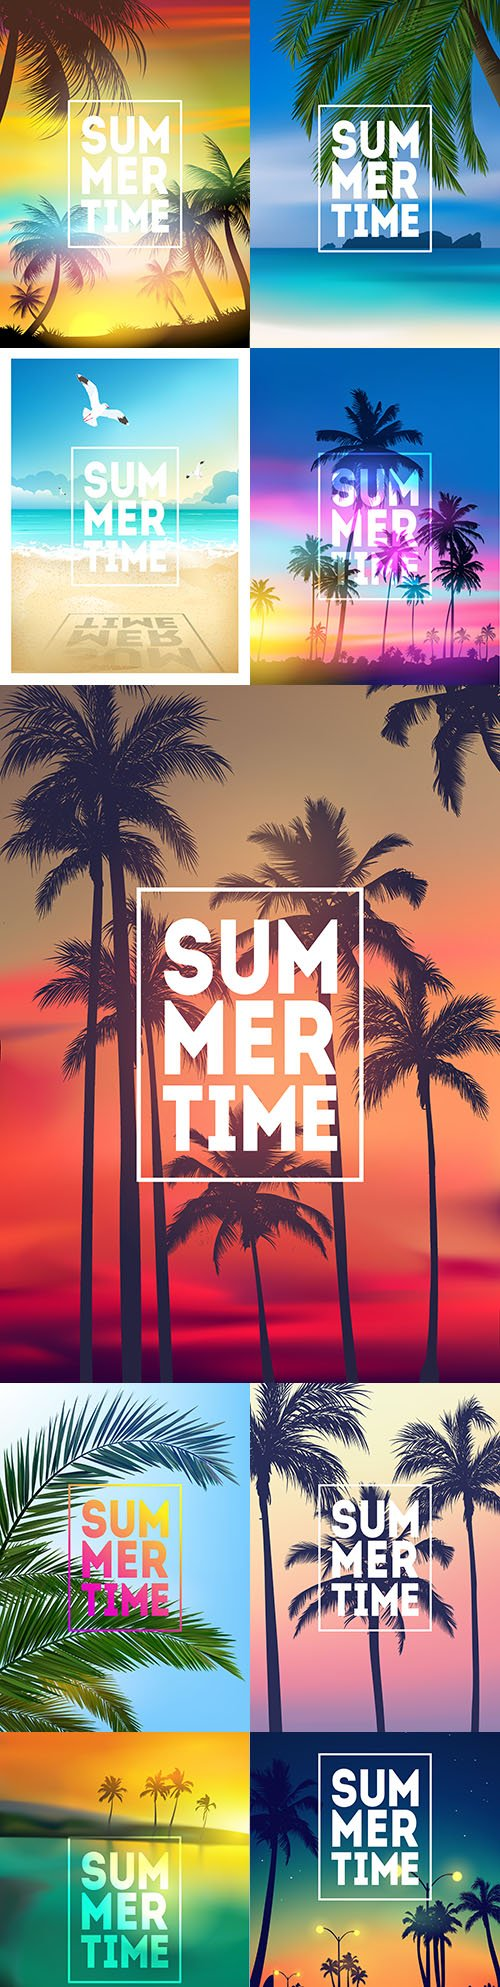 Summer tropical background with palm trees and sunset